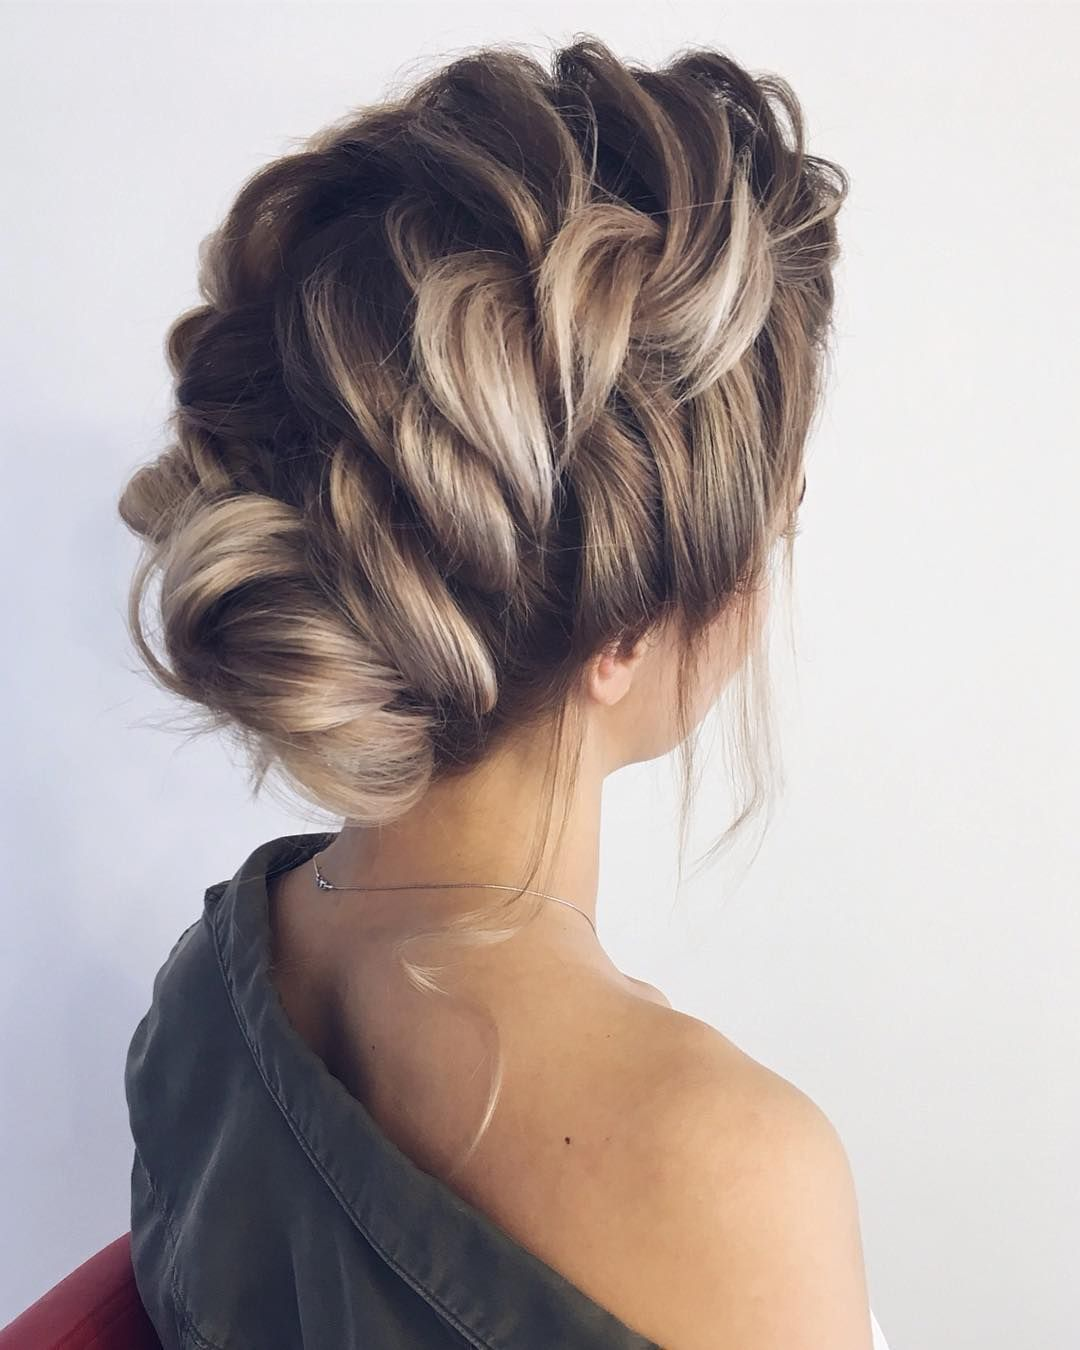 Braided Updo Hairstyles Braid Wedding Hairstyles Updo Loose Braid Updo Weddi Braided Hairstyles Updo Braided Hairstyles For Wedding Medium Length Hair Styles